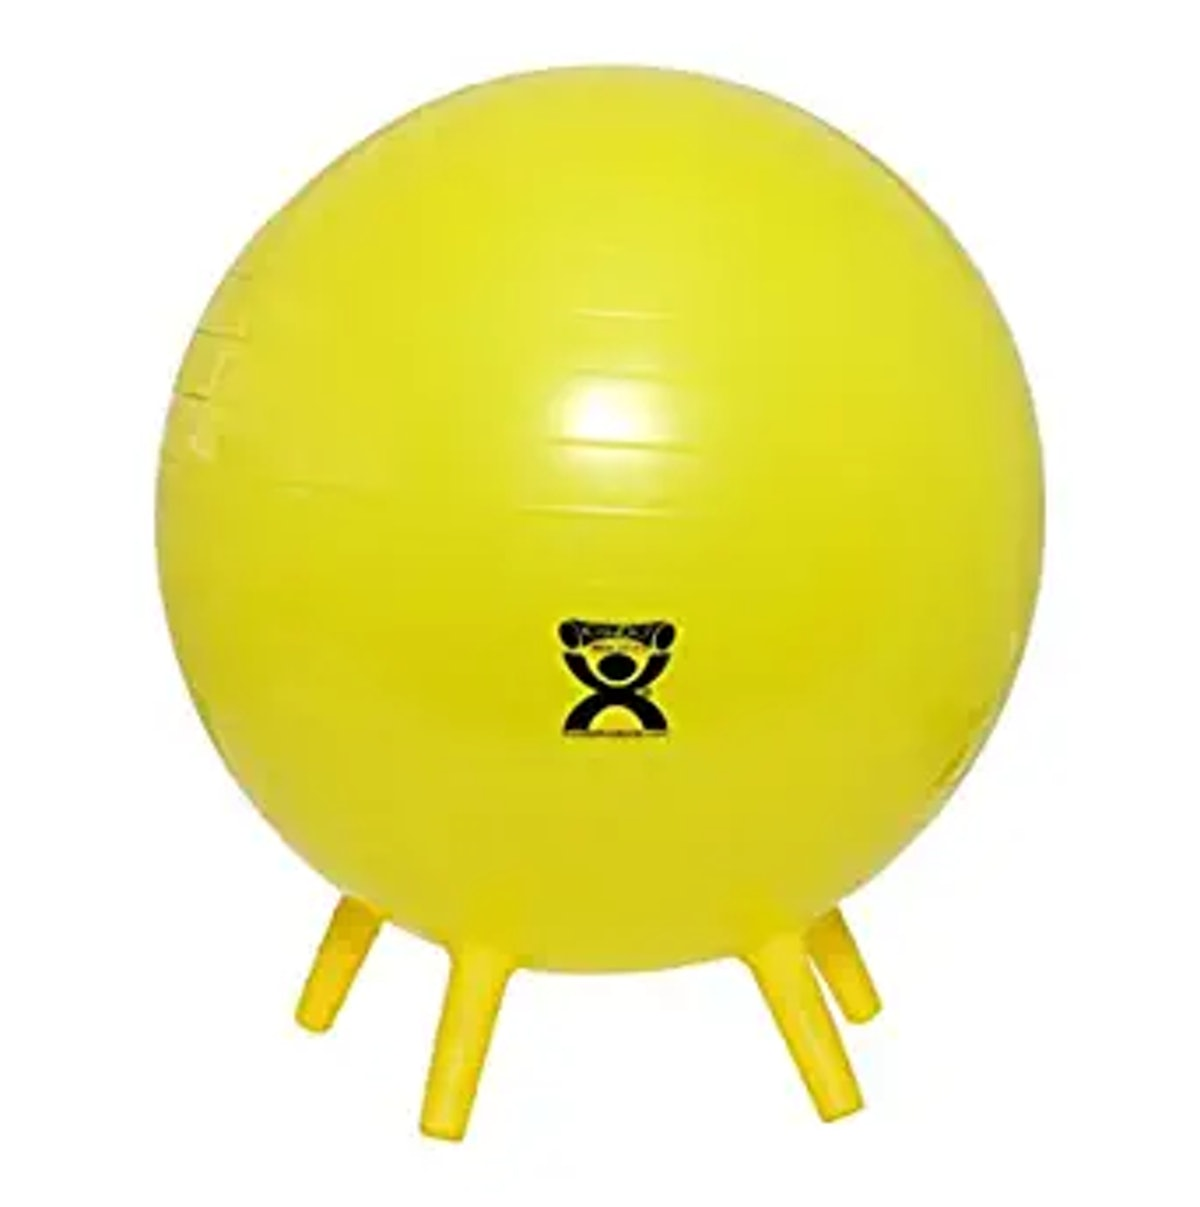 CanDo Inflatable Exercise Ball With Stability Feet